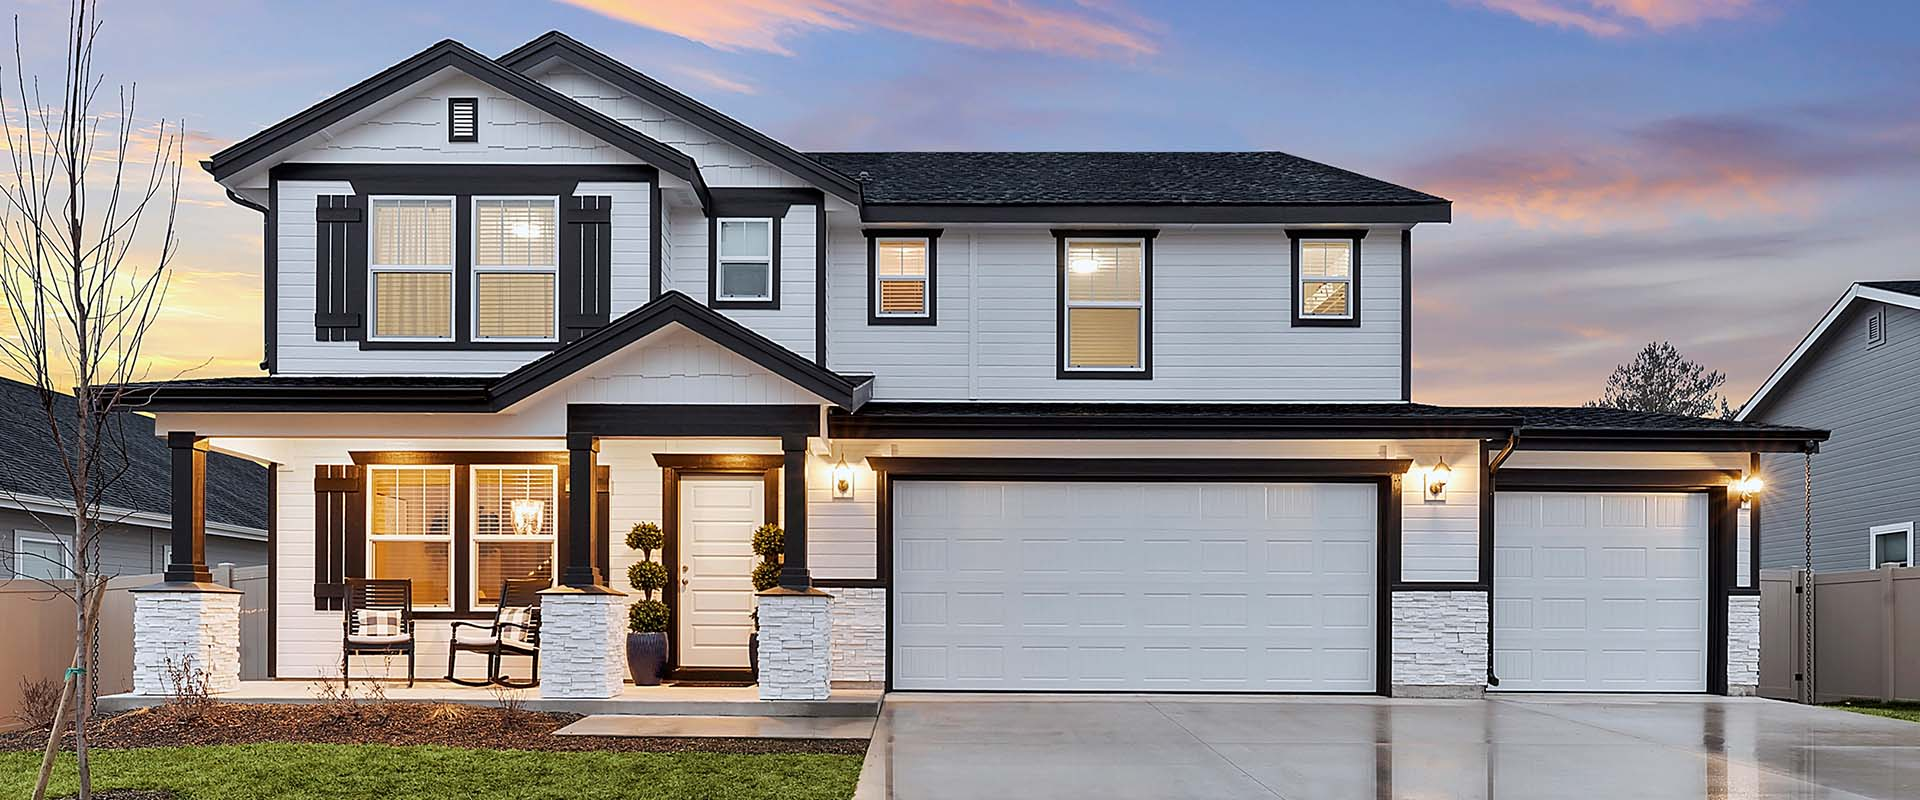 Spruce-new-homes-boise-idaho-hubble-homes2.jpg